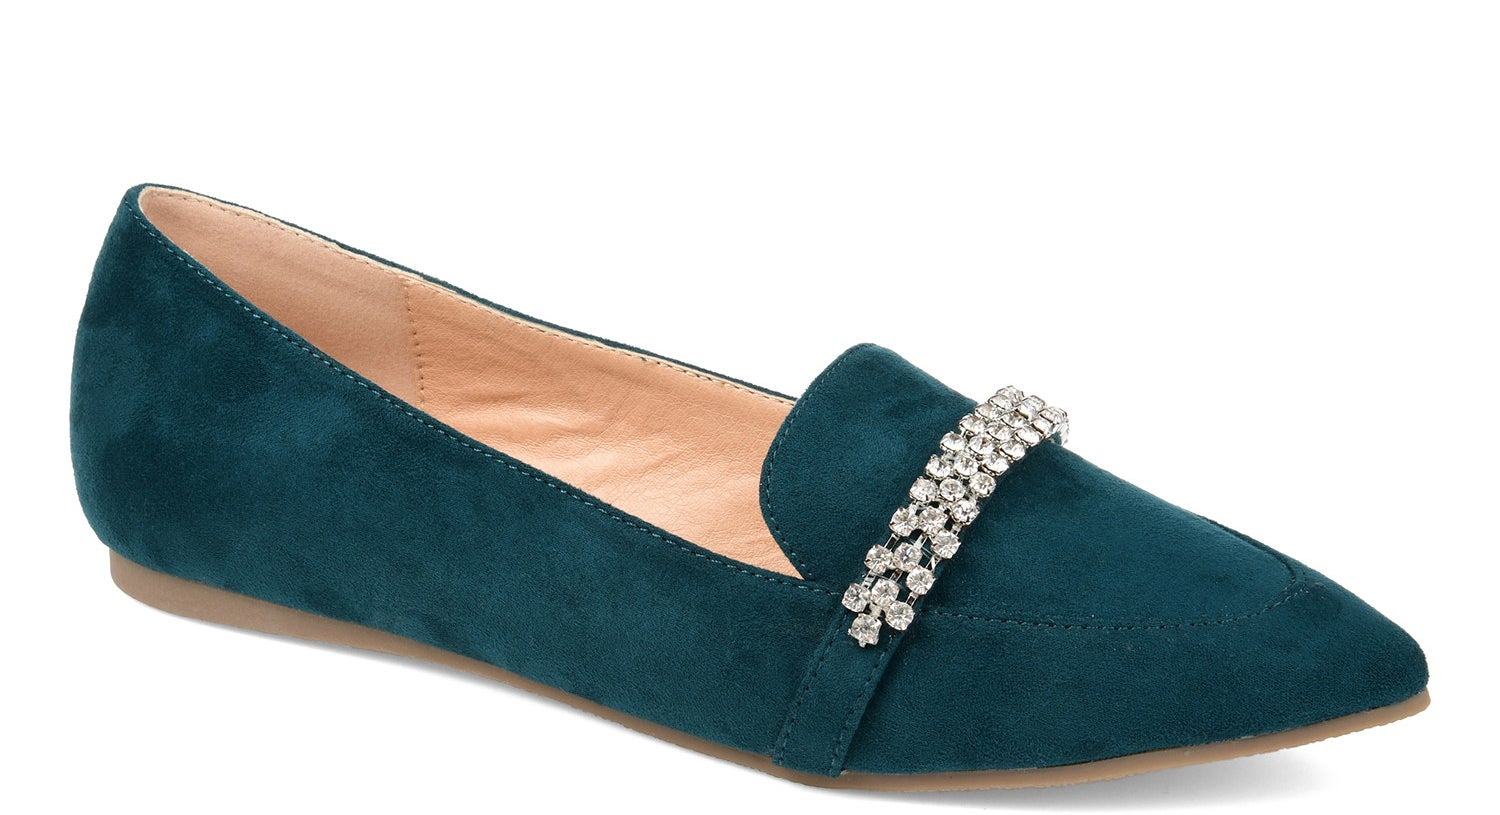 Green pointed toe flats with rhinestone strap